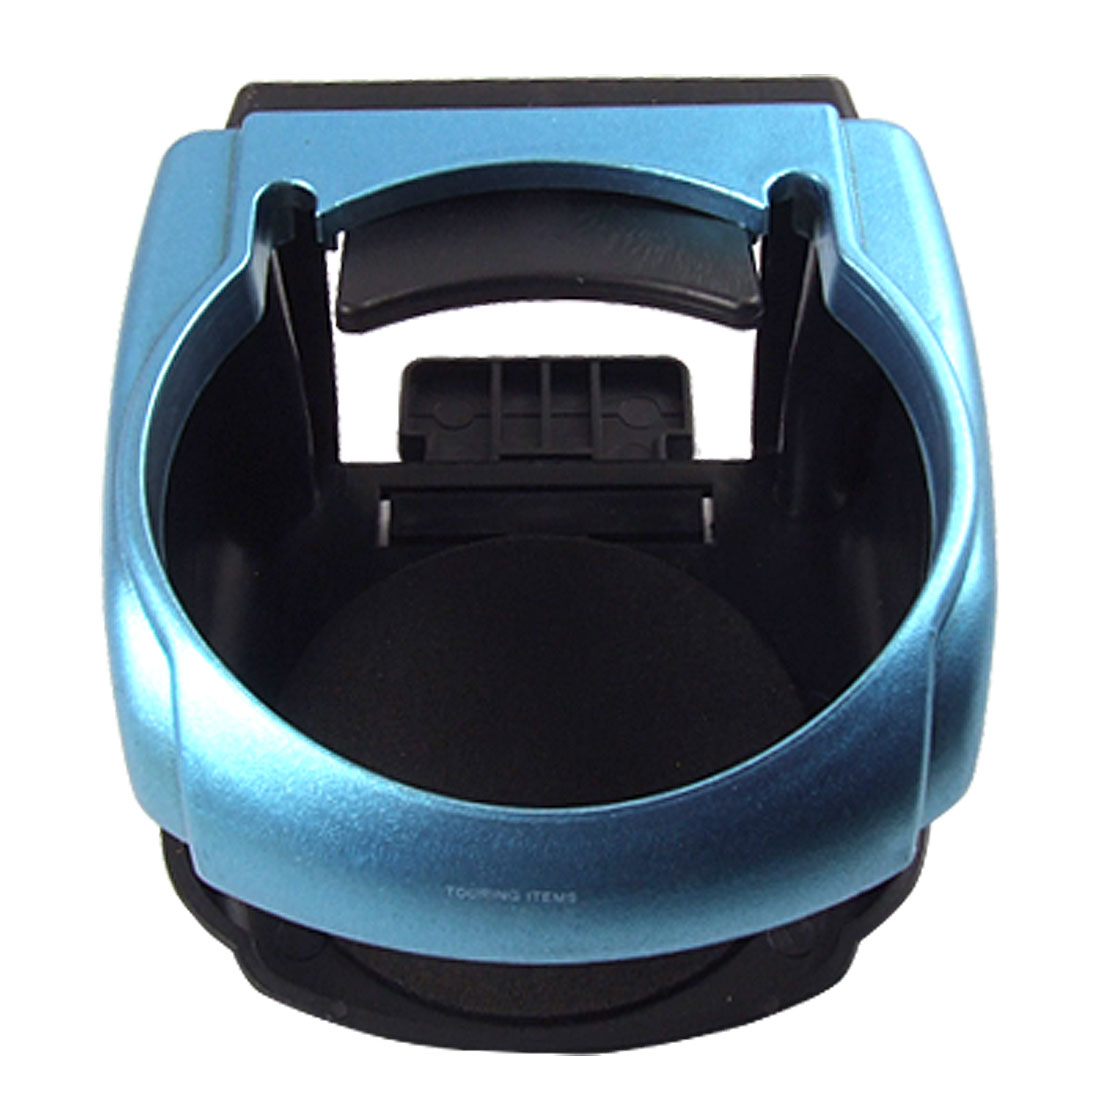 Auto Car Blue Black Plastic Drink Cup Bottle Stand Holder